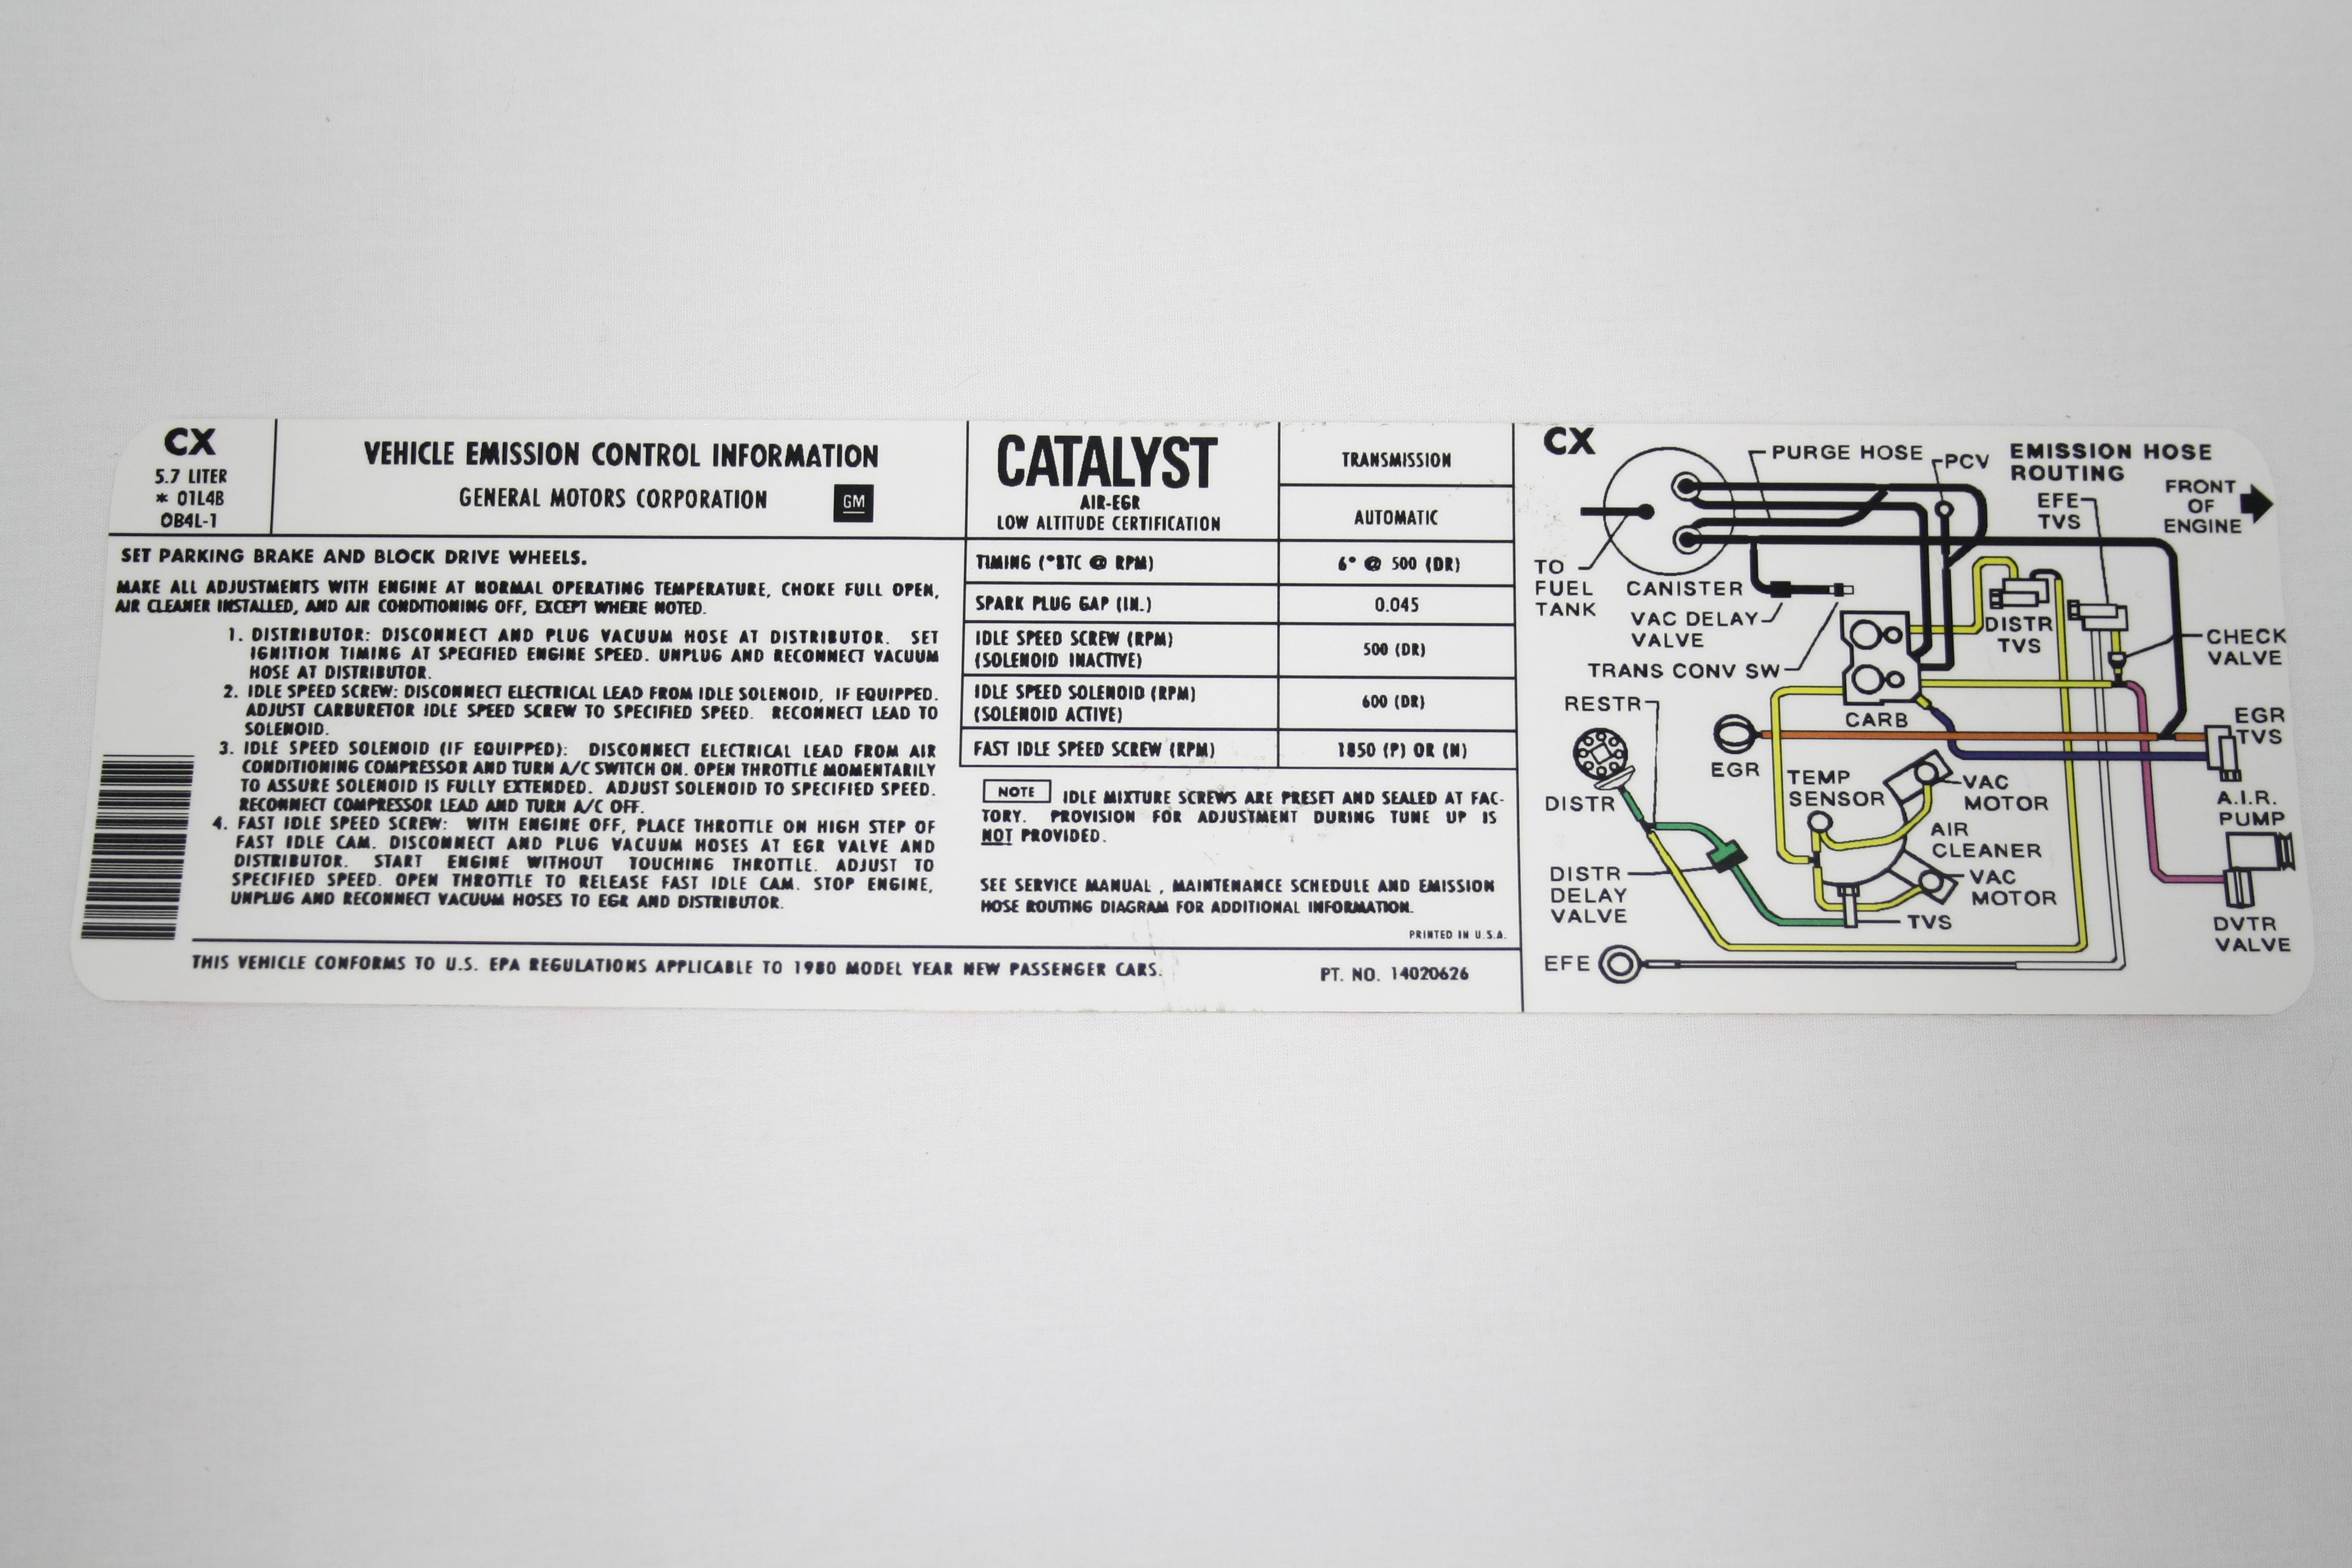 Keen Corvette Parts Diagrams Ar9 Crossover Wiring Diagram 1980 Emission Decal L48 350 Automatic Transmission